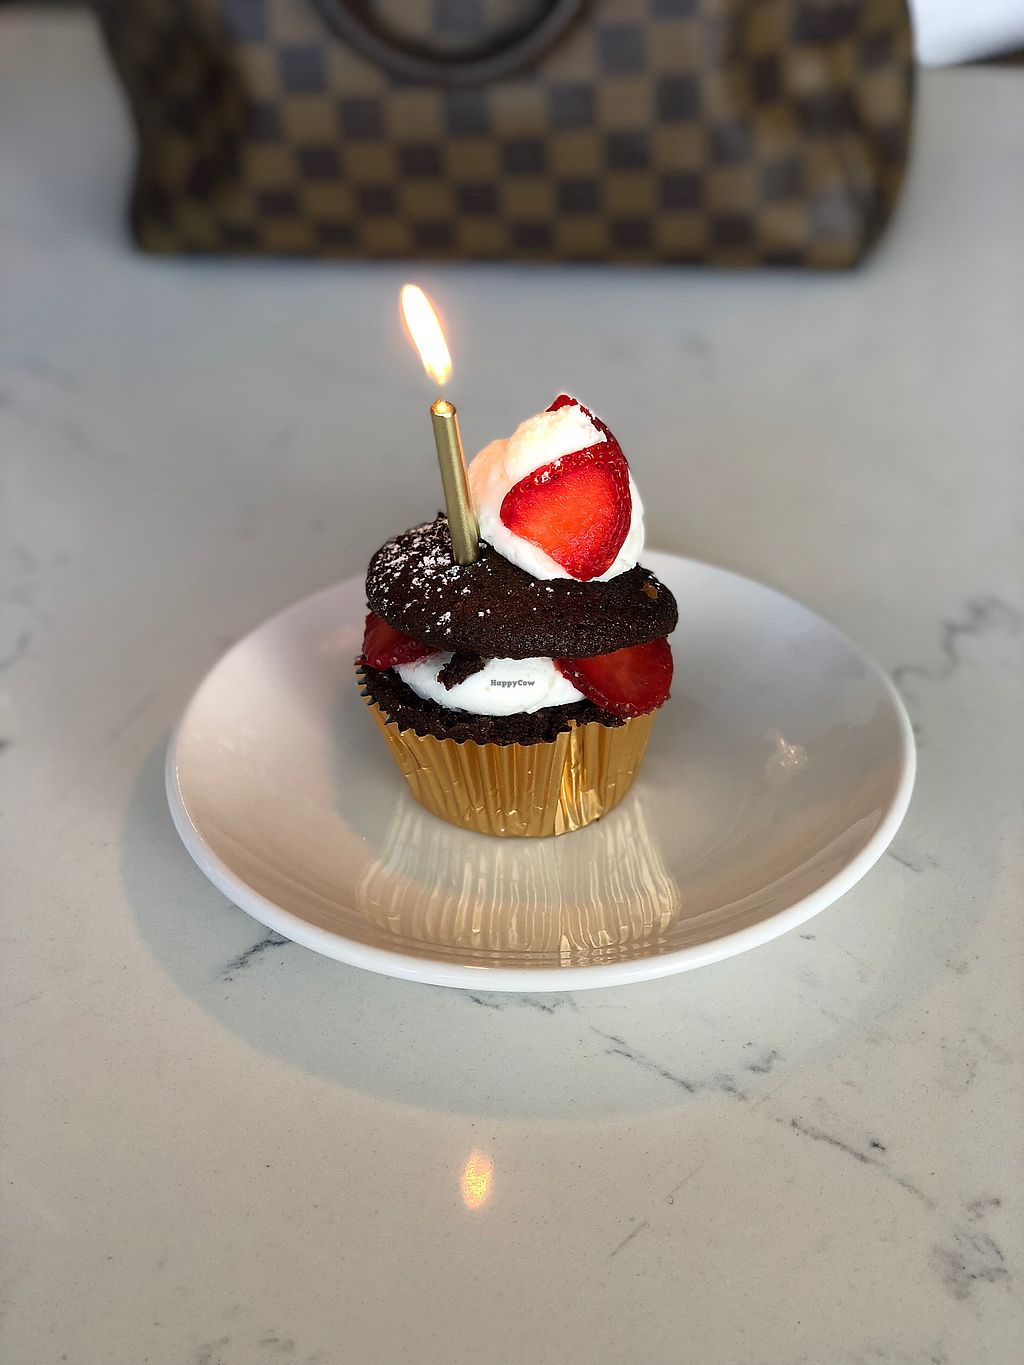 """Photo of Chef Chloe and the Vegan Cafe  by <a href=""""/members/profile/JorgeDelValle"""">JorgeDelValle</a> <br/>Birthday Celebration ????? <br/> March 25, 2018  - <a href='/contact/abuse/image/113080/376019'>Report</a>"""